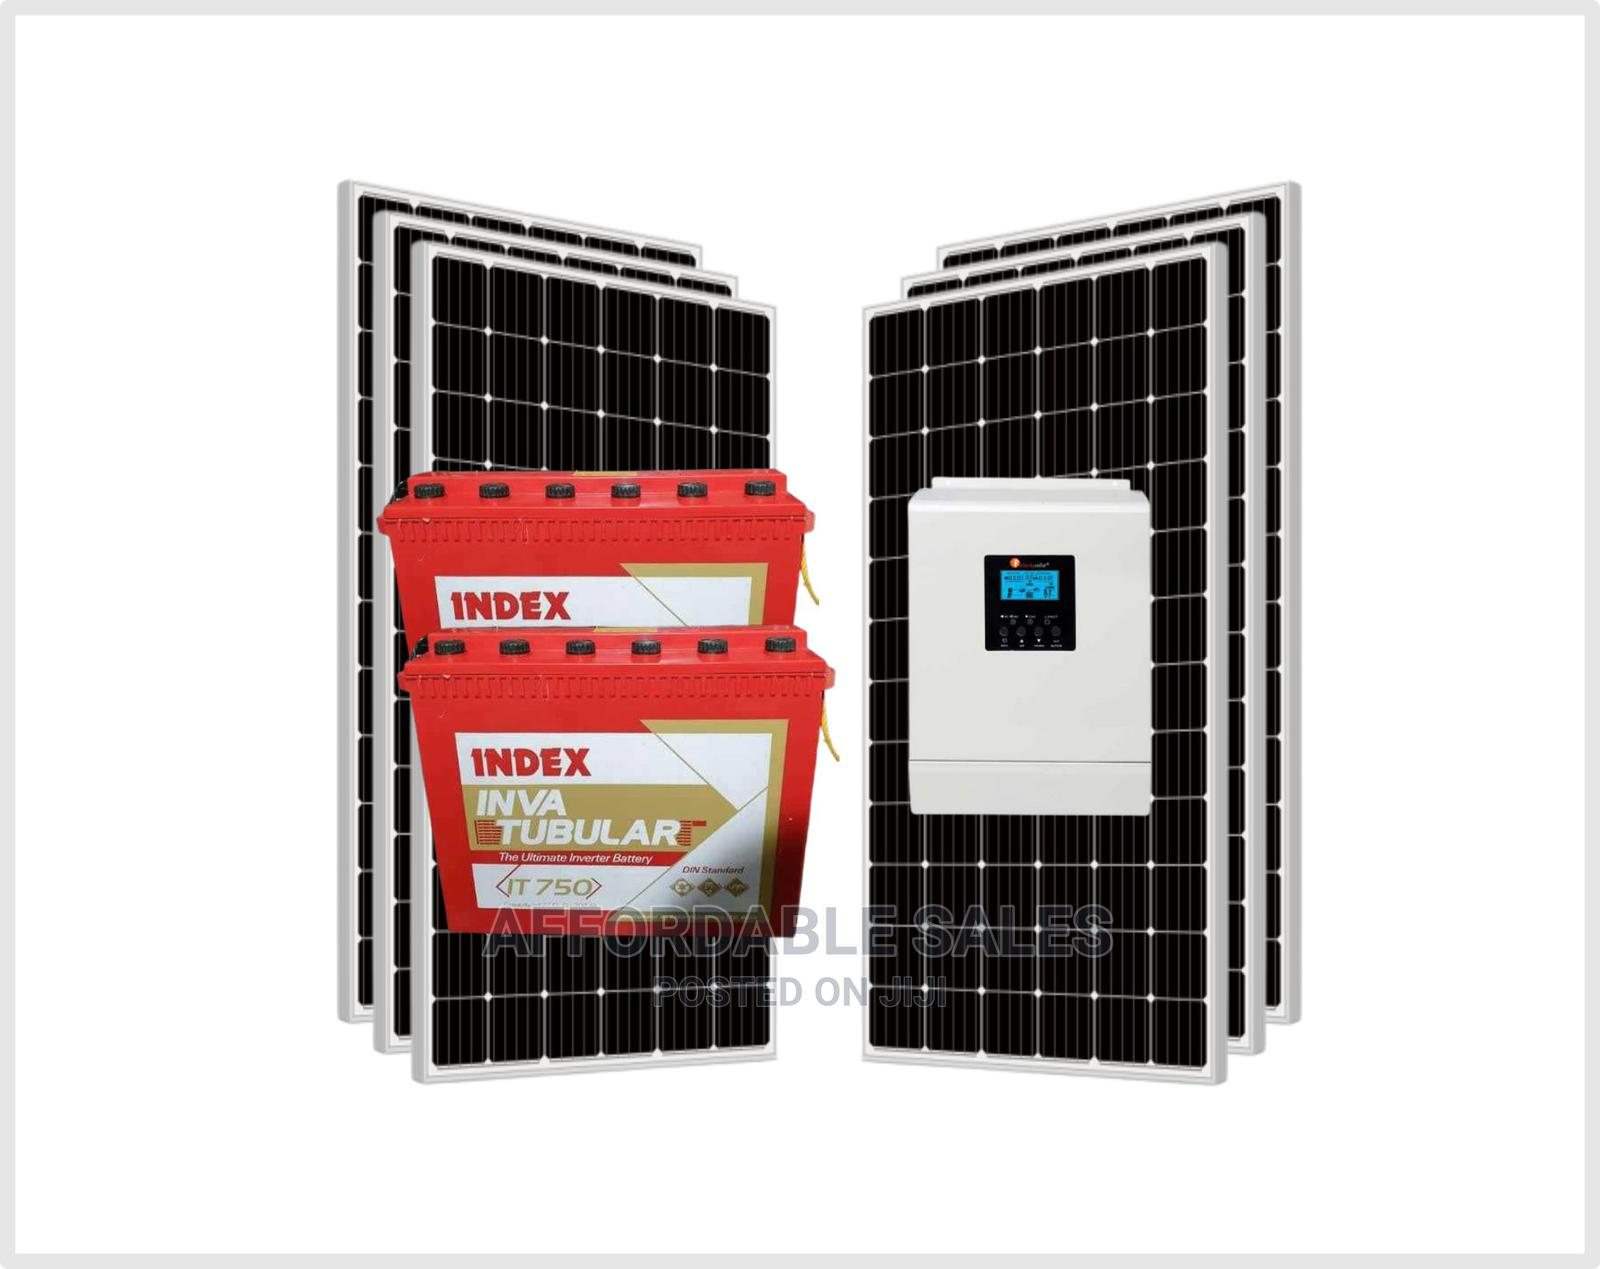 Unlimited Power With 3KVA Solar Complete With 60A MPPT